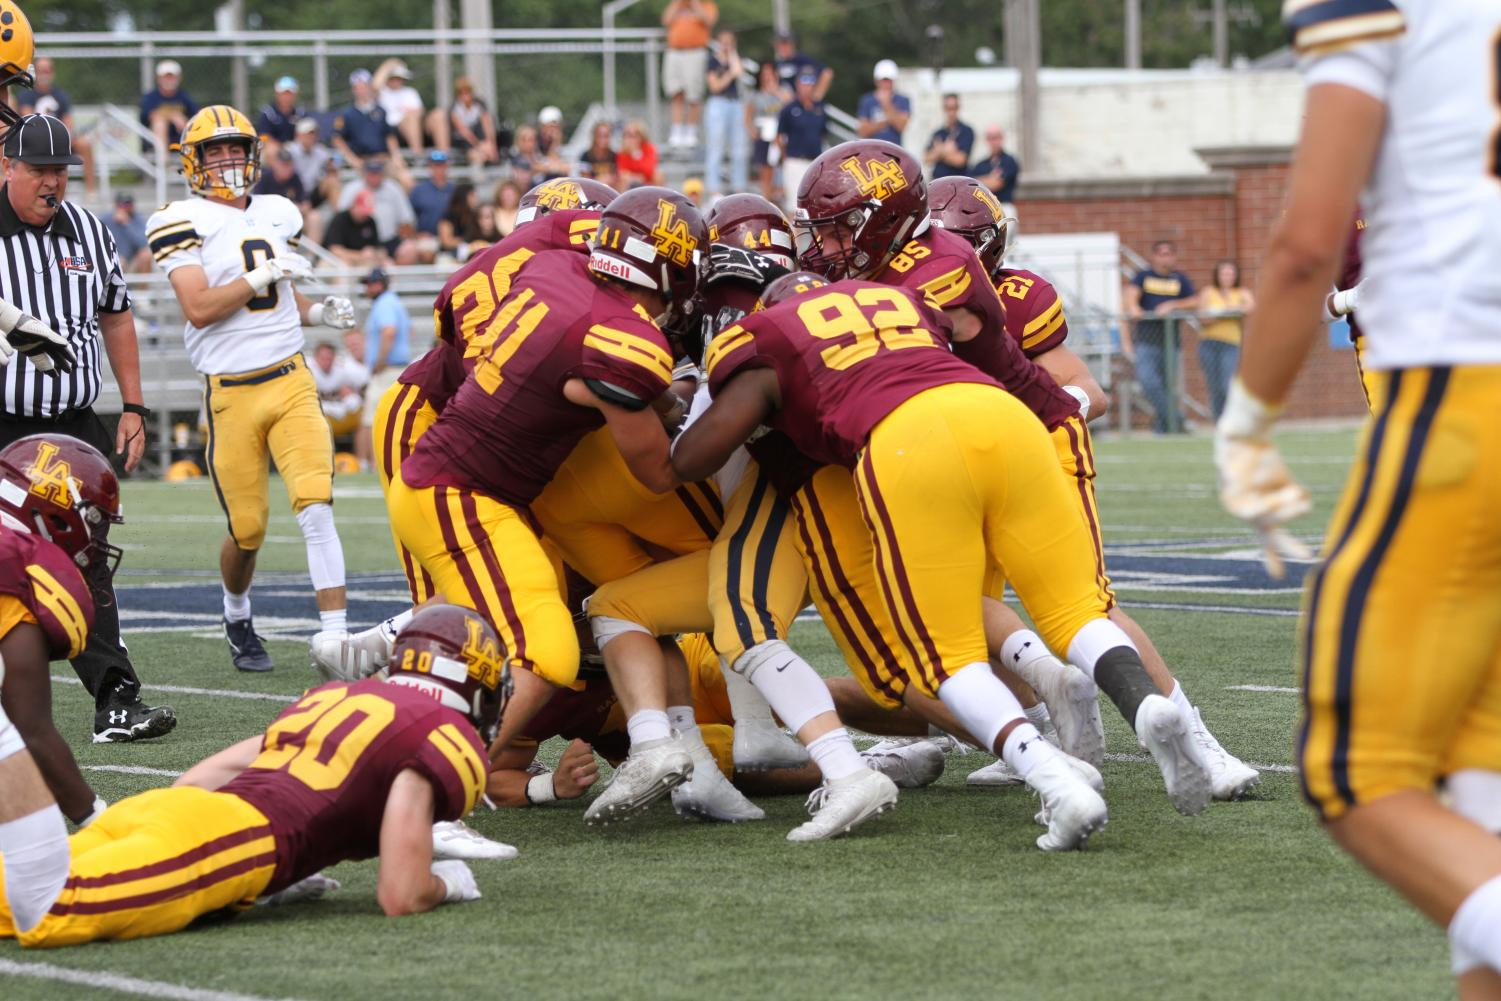 Rambler defense makes tackle against St Ignatius Cleveland. Ramblers suffered a defeat 27-10